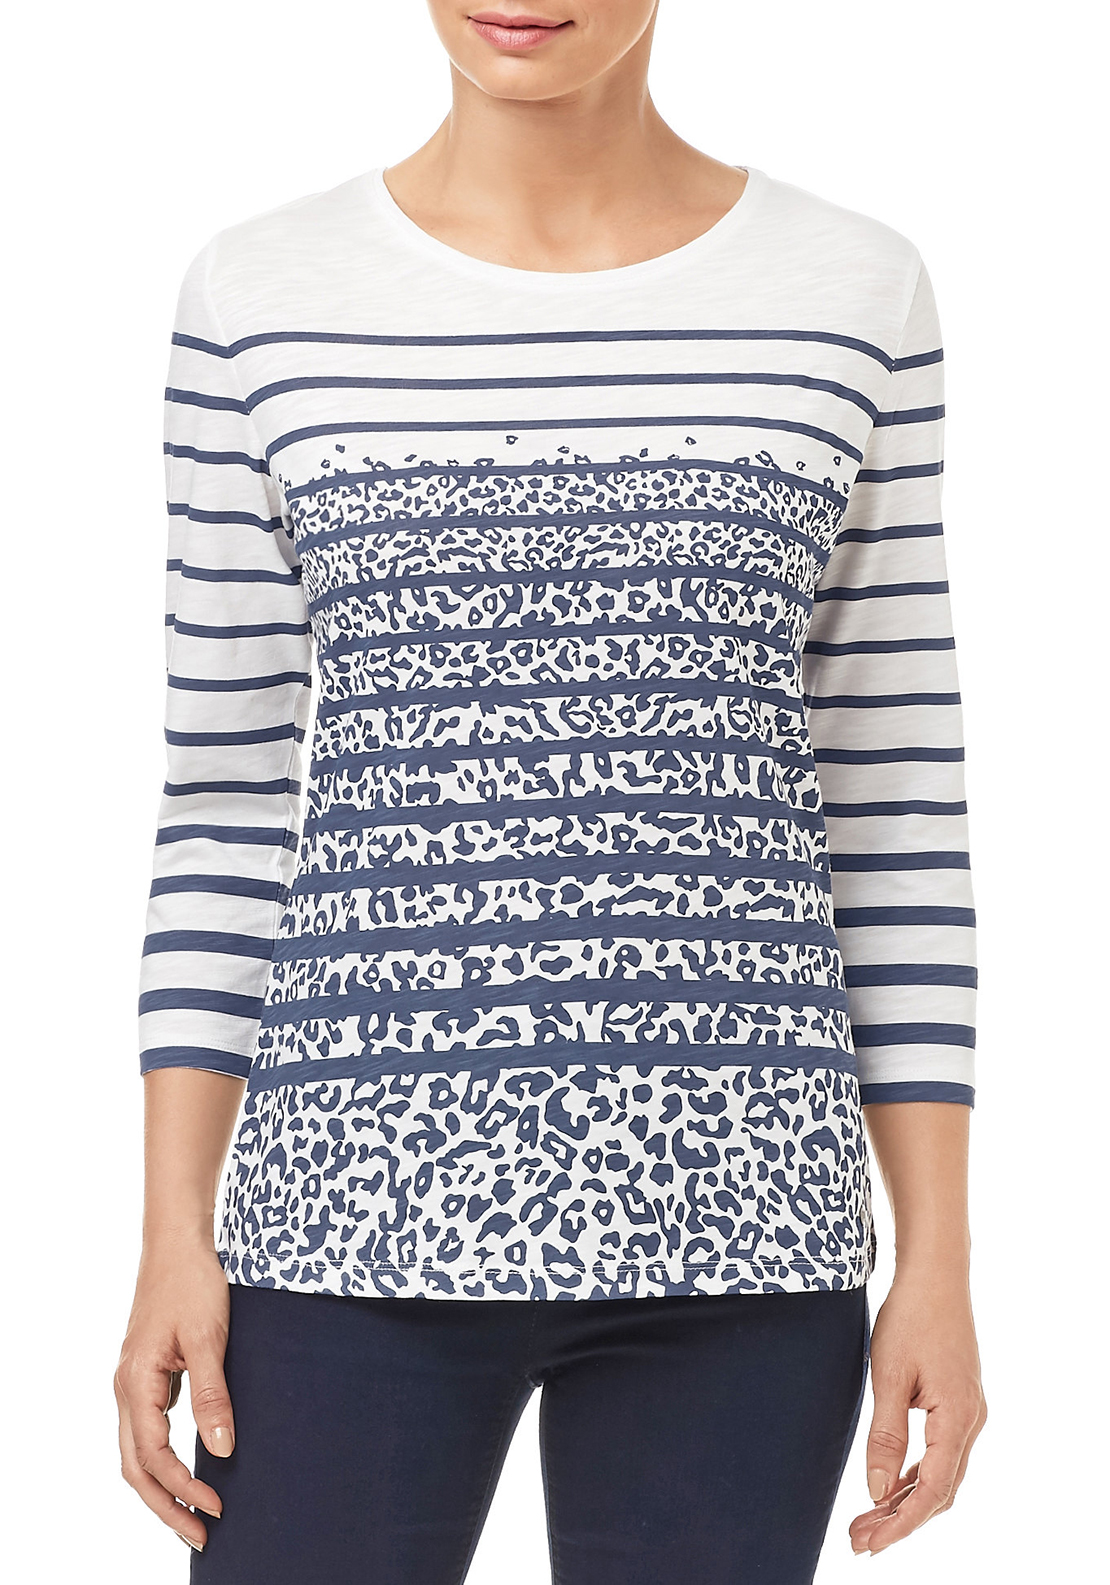 Gerry Weber Striped & Animal Printed Top, Multi-coloured